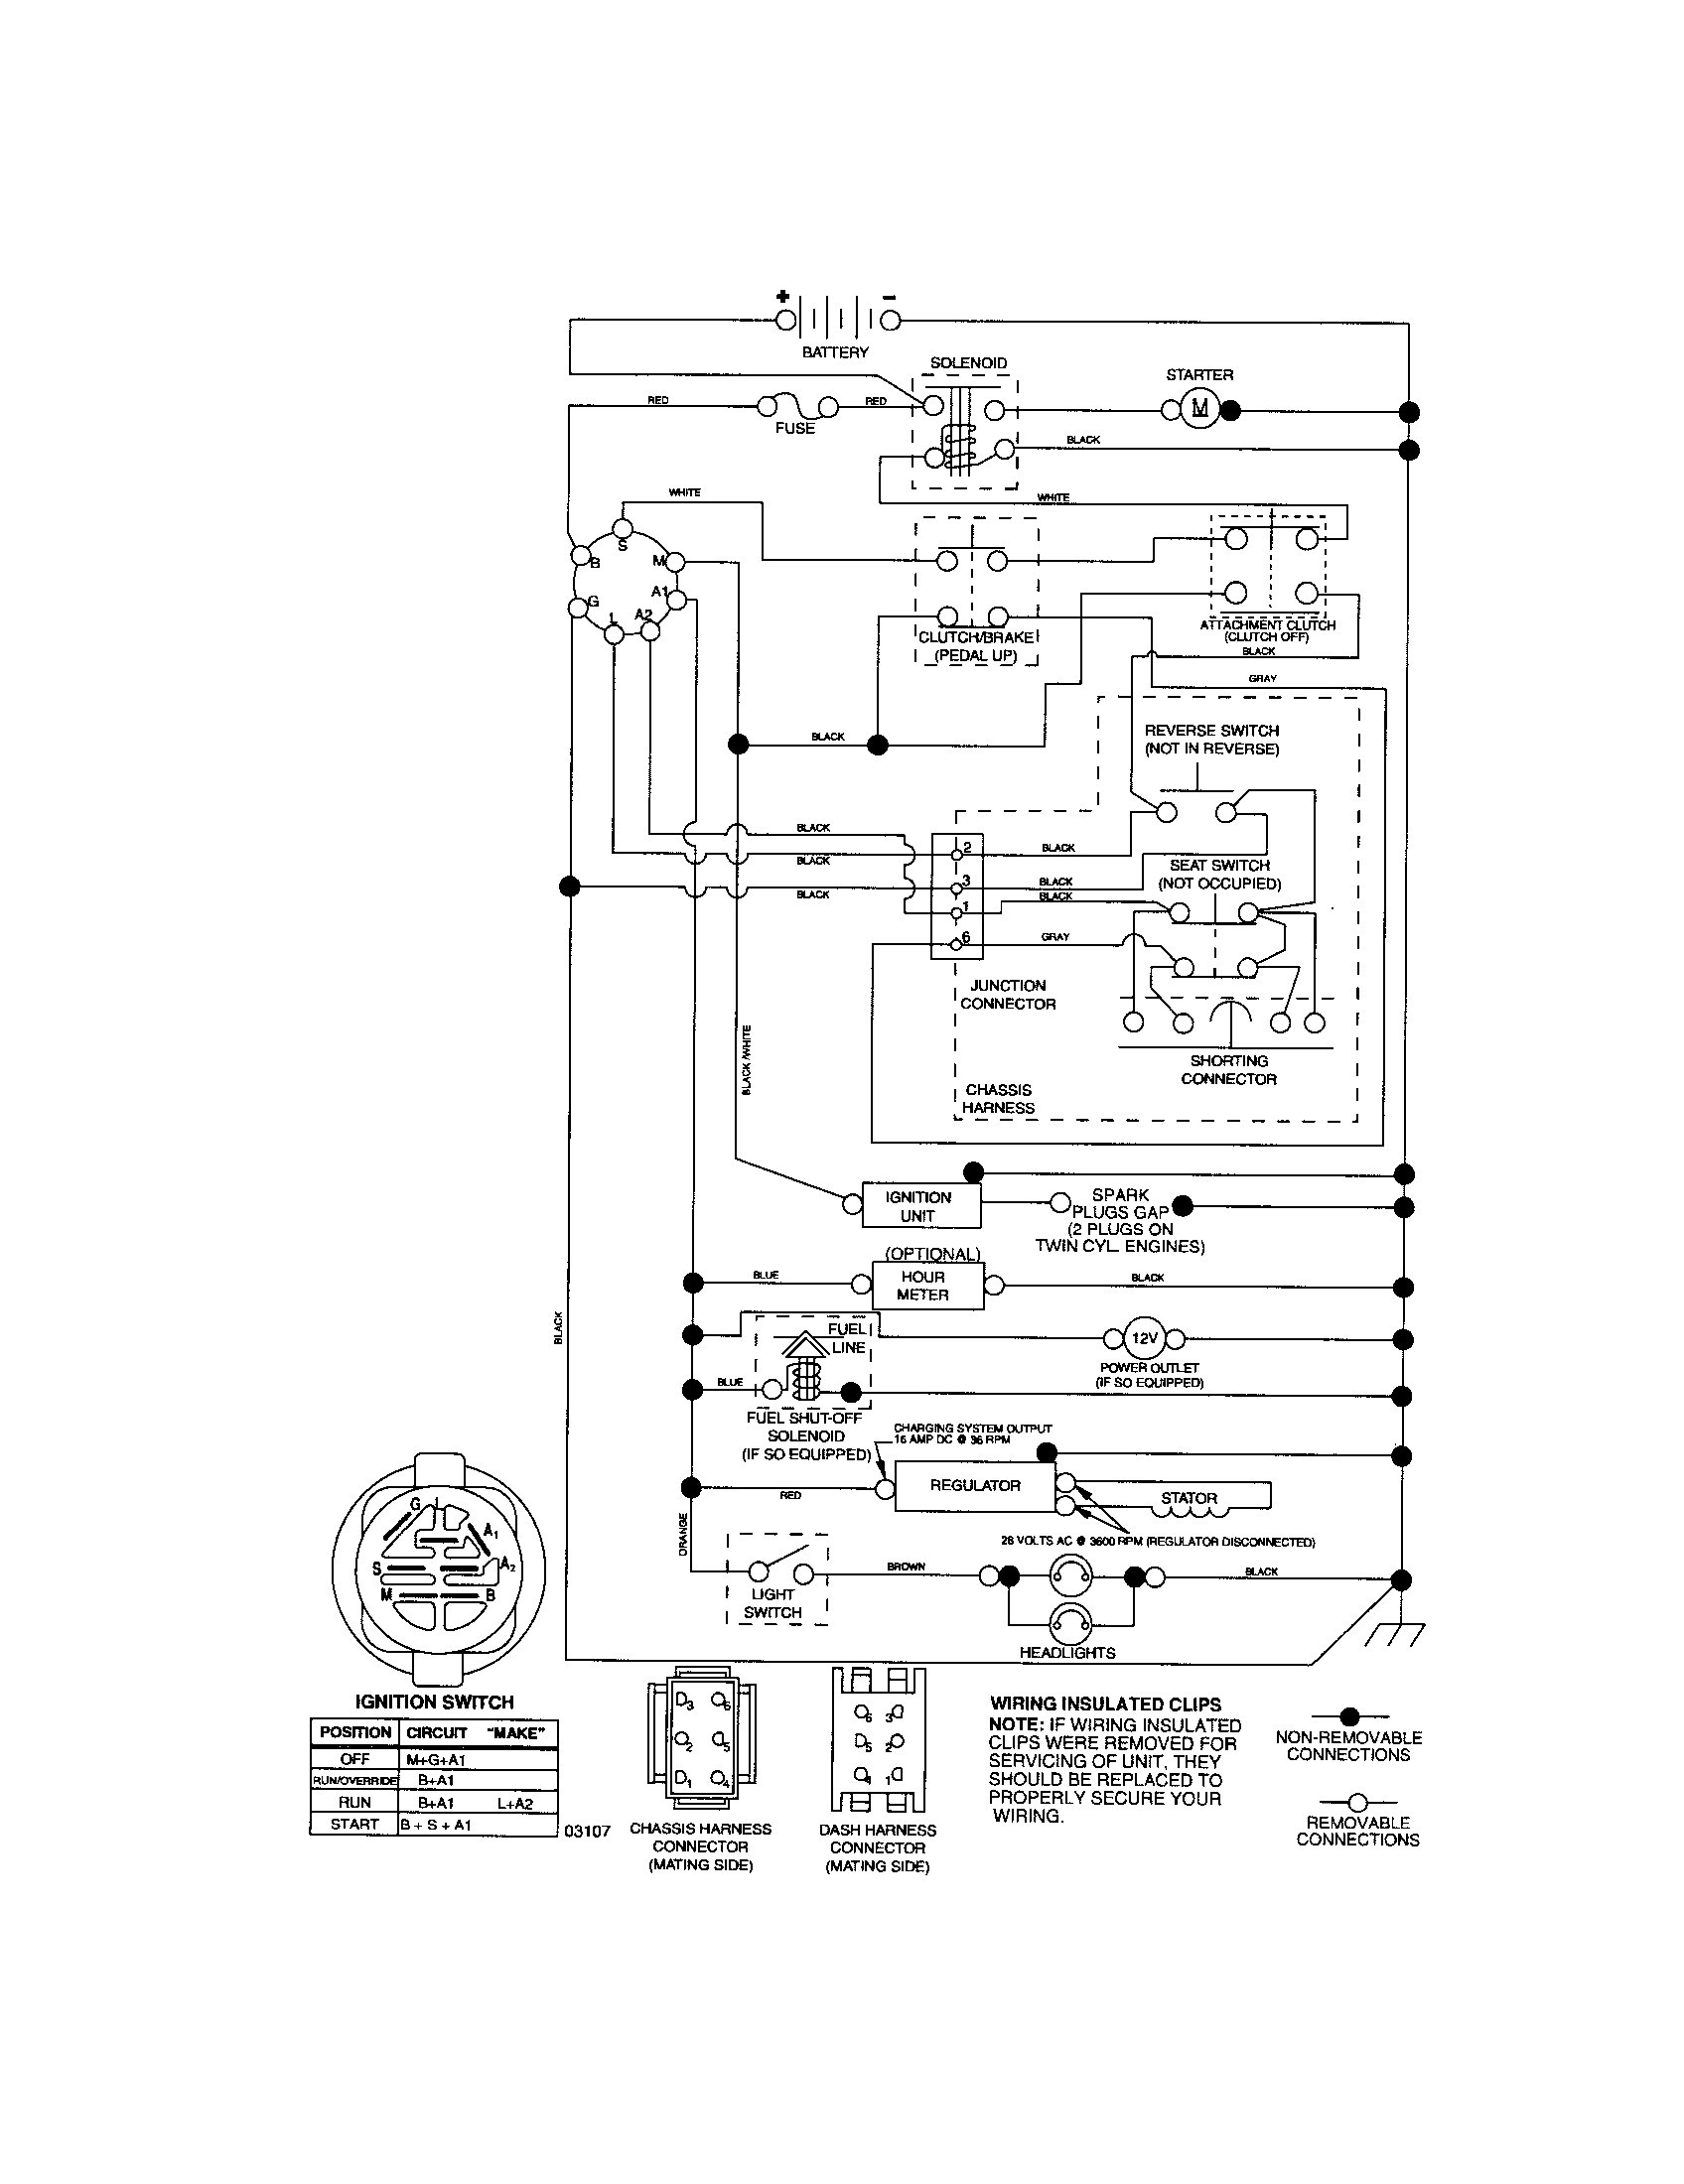 Wiring Manual PDF: 16241 Wheel Horse Garden Tractor Wire